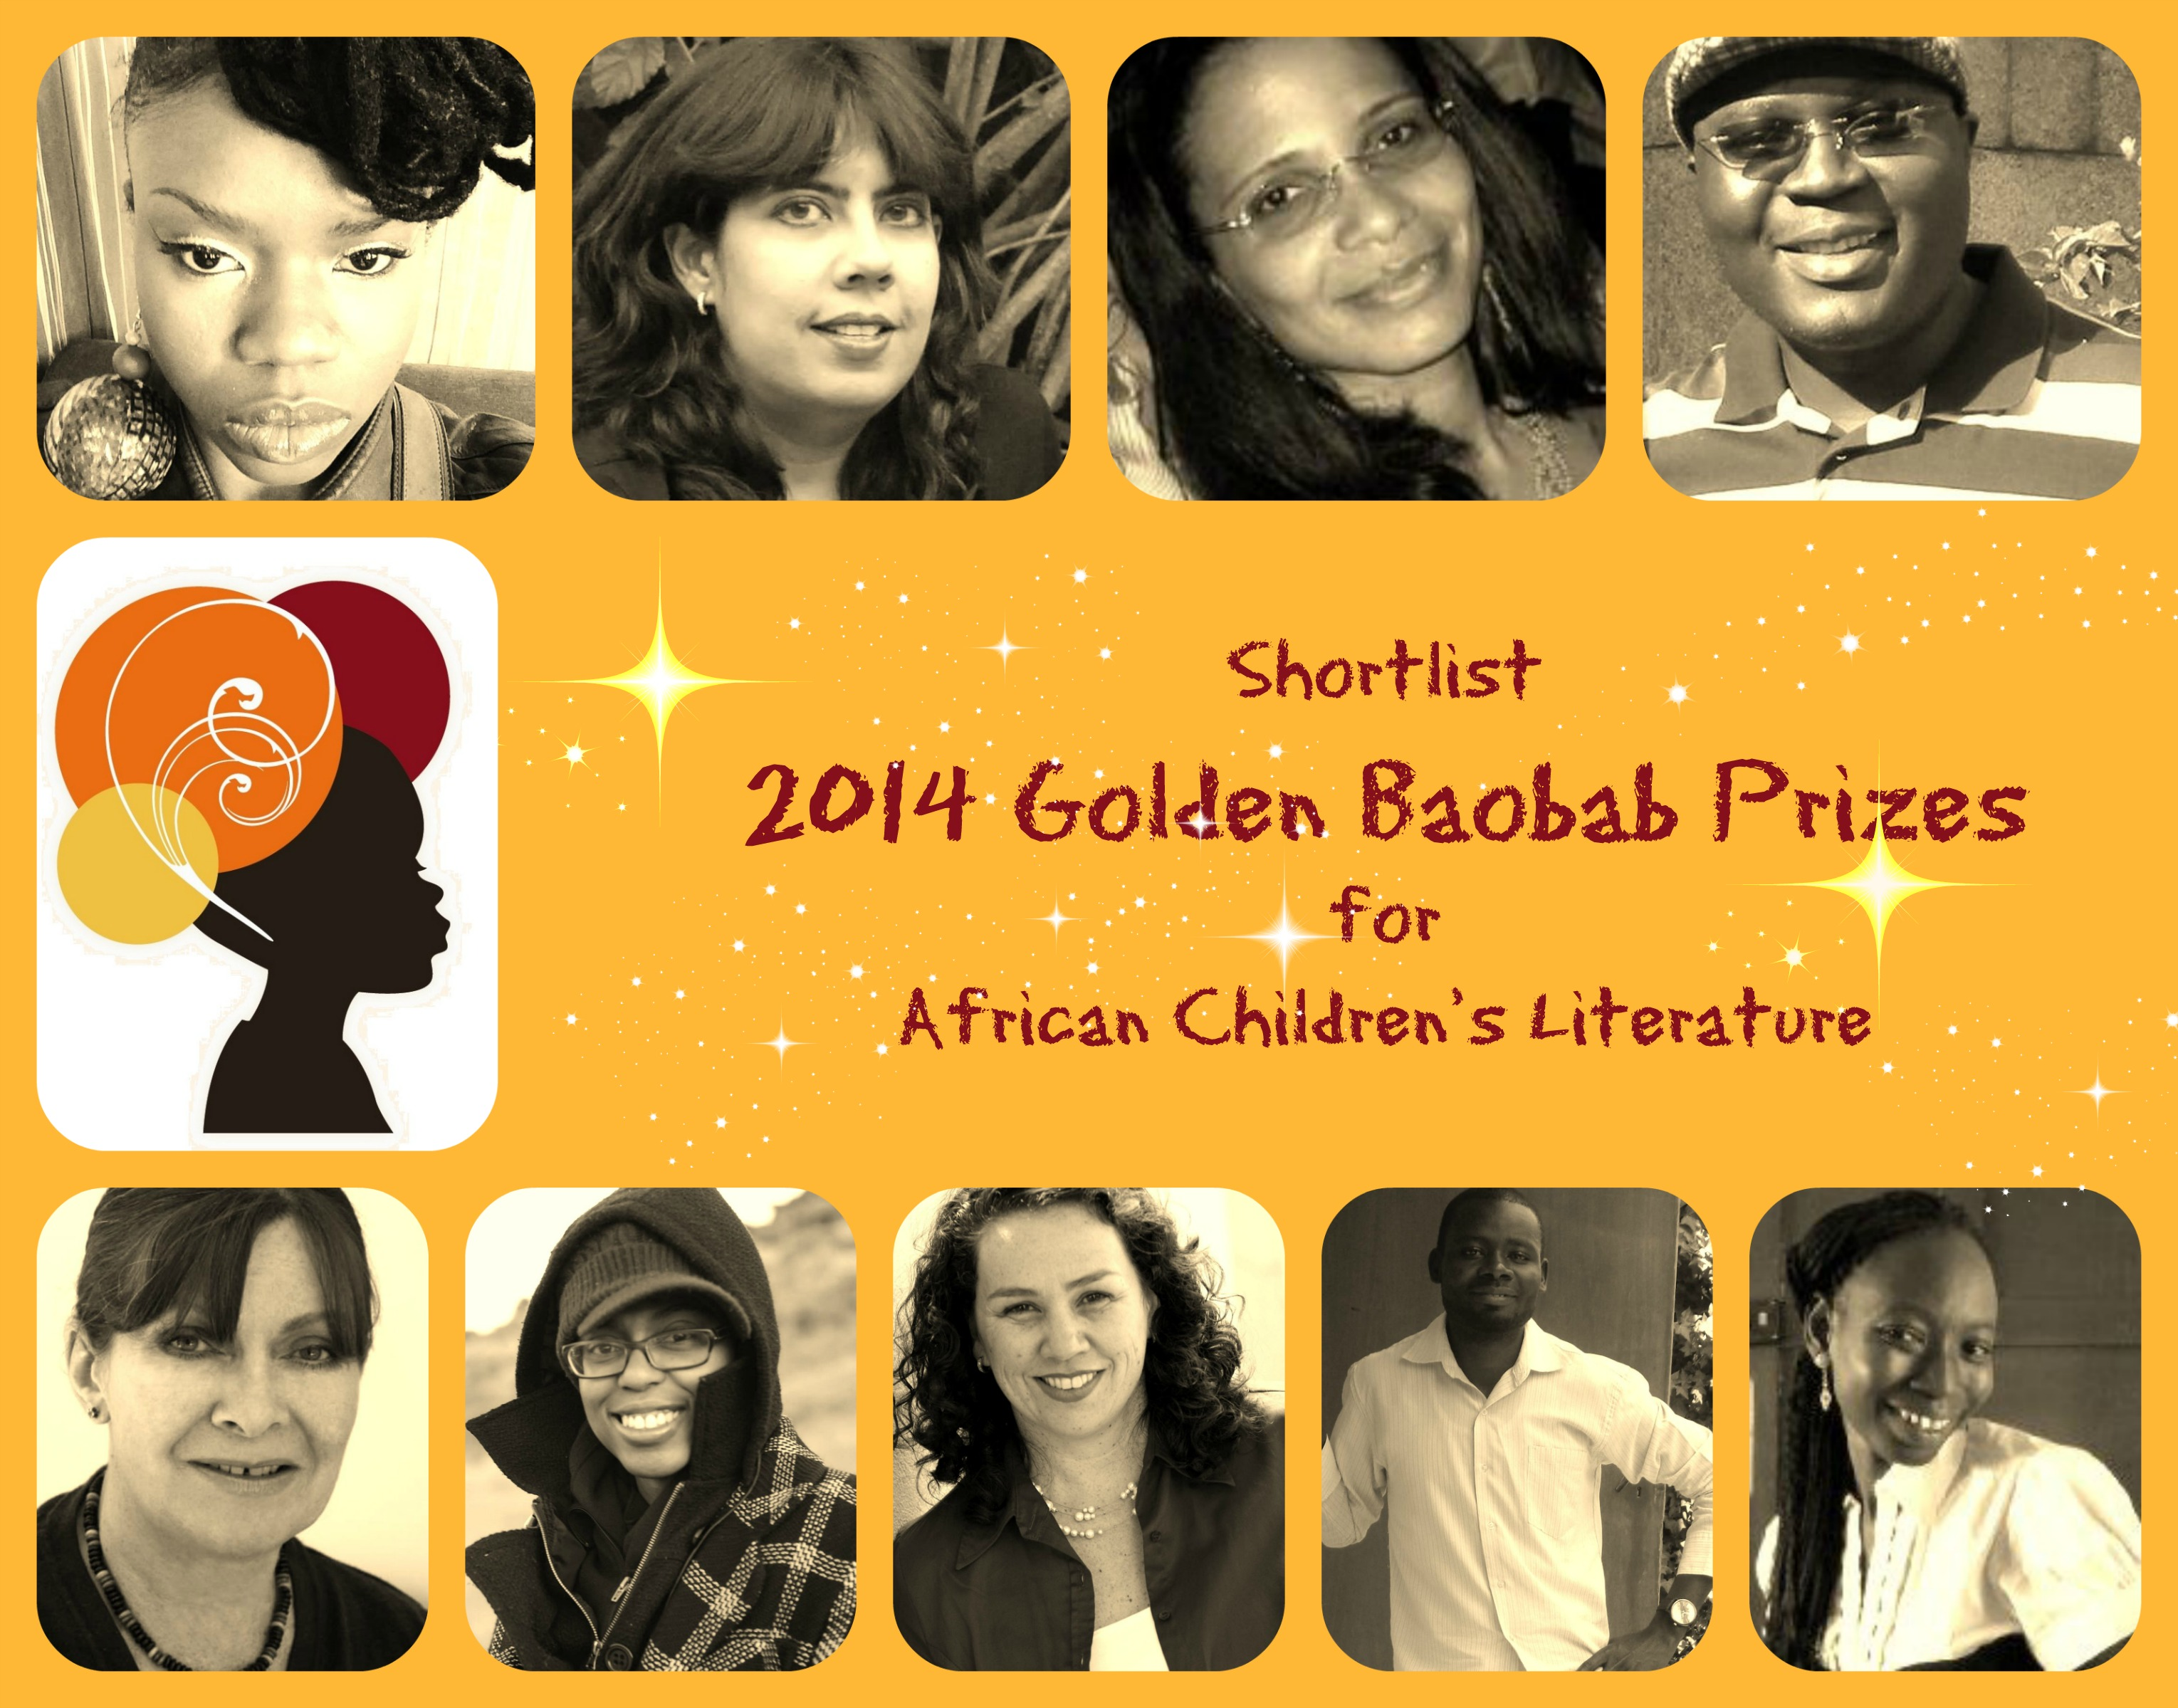 Golden Baobab shortlisted Writers  for Children's Literature